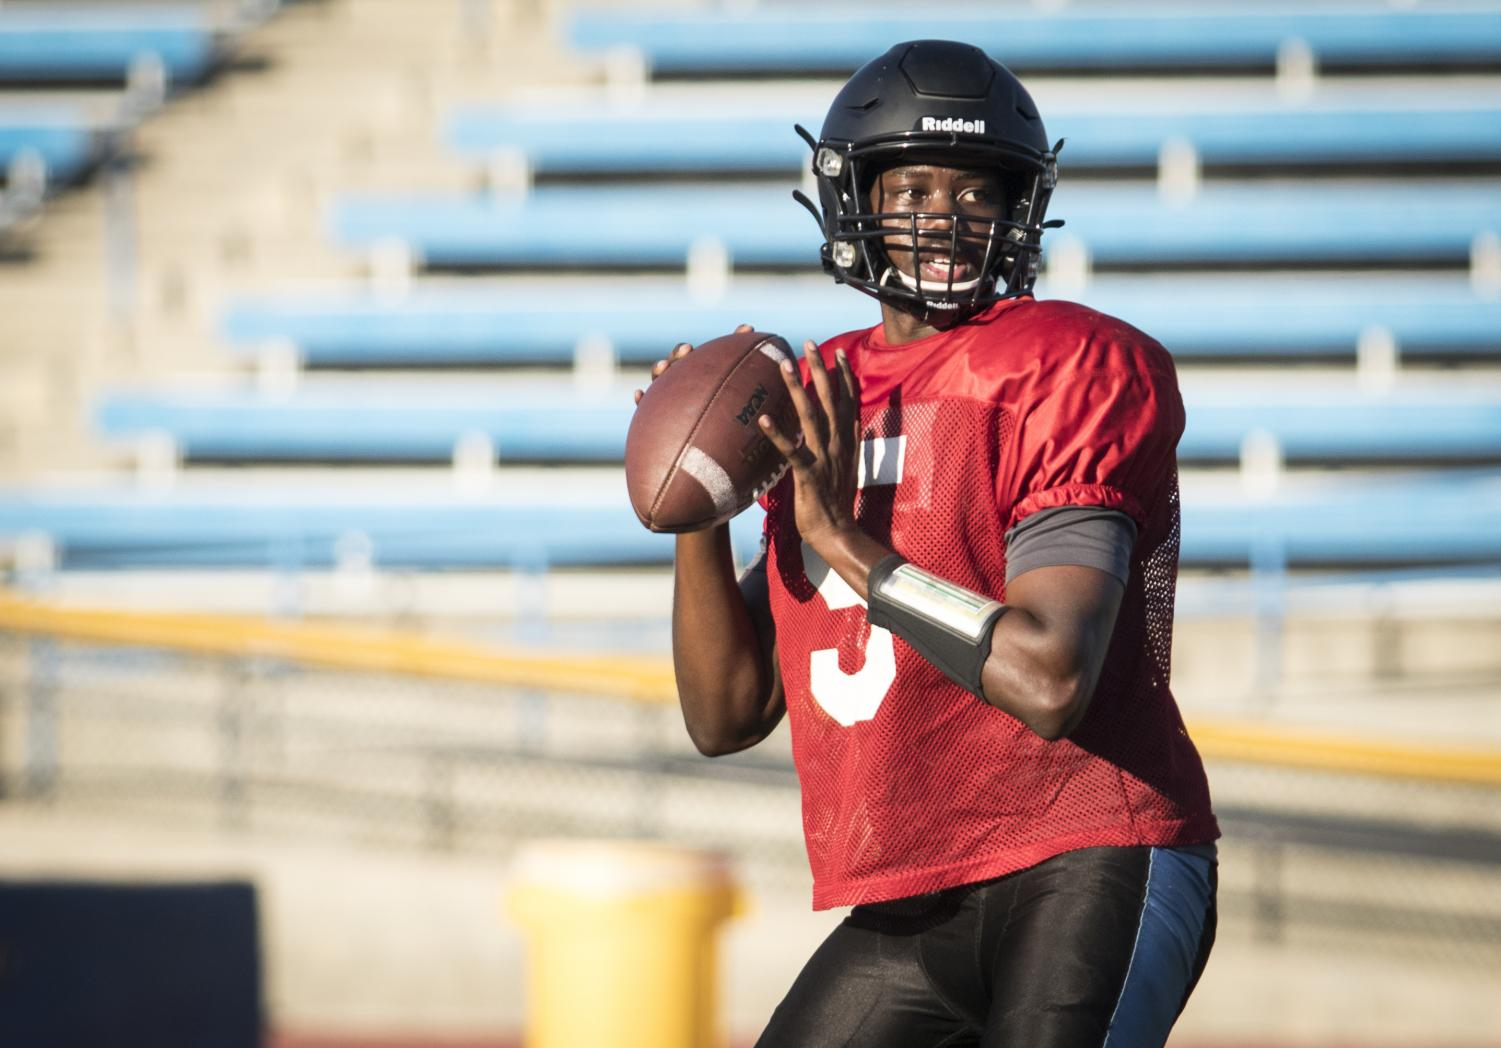 Vincent James prepares for a pass during Moorpark Raider football practice on Tuesday, Aug. 20, at Moorpark College. James is a leader in the team's search for this season's quarterback. Photo credit: Evan Reinhardt